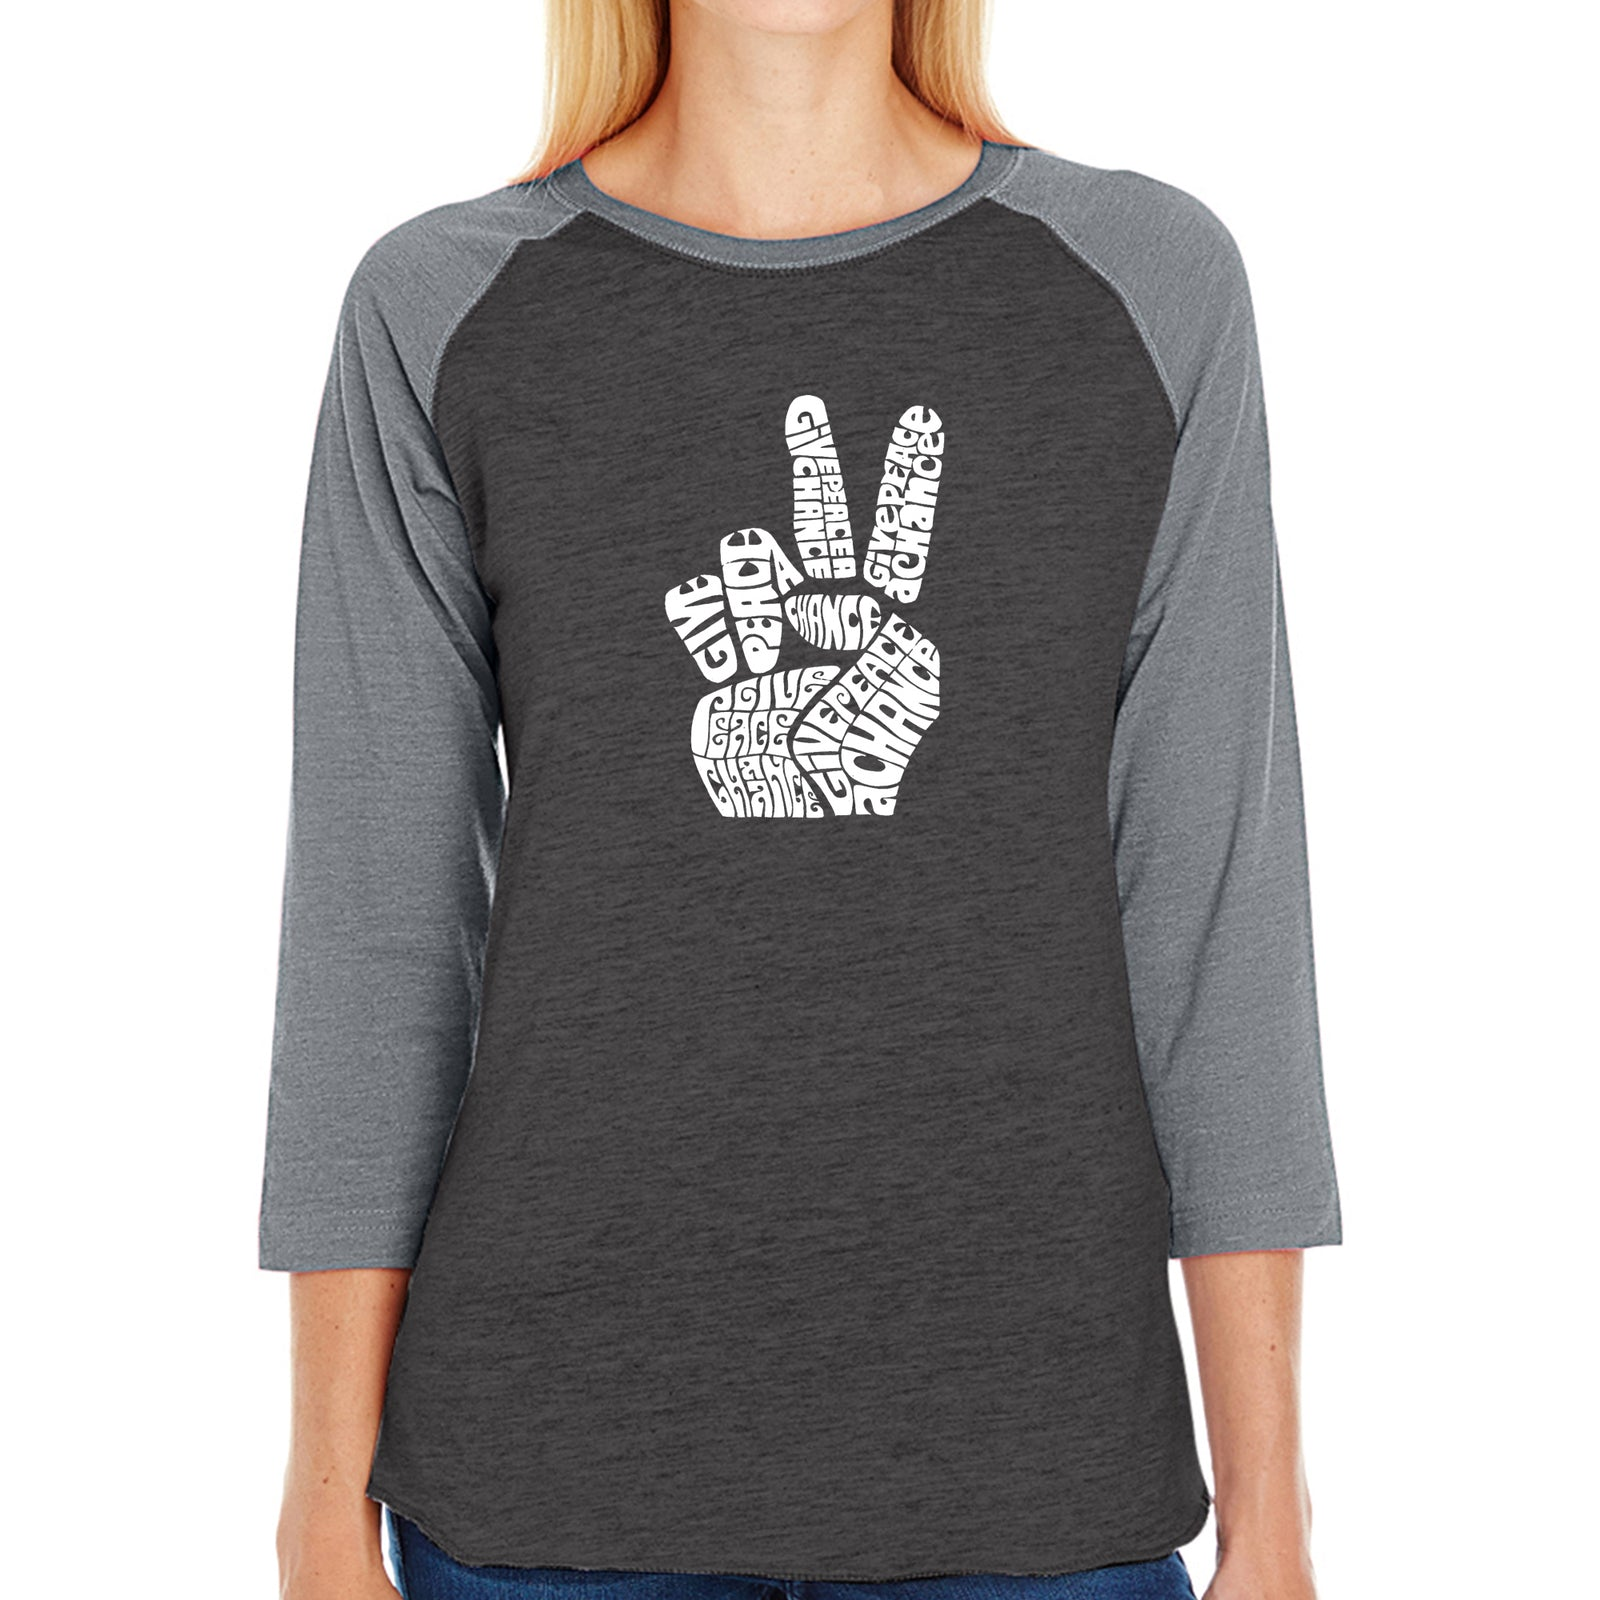 Women's Raglan Baseball Word Art T-shirt - PEACE FINGERS